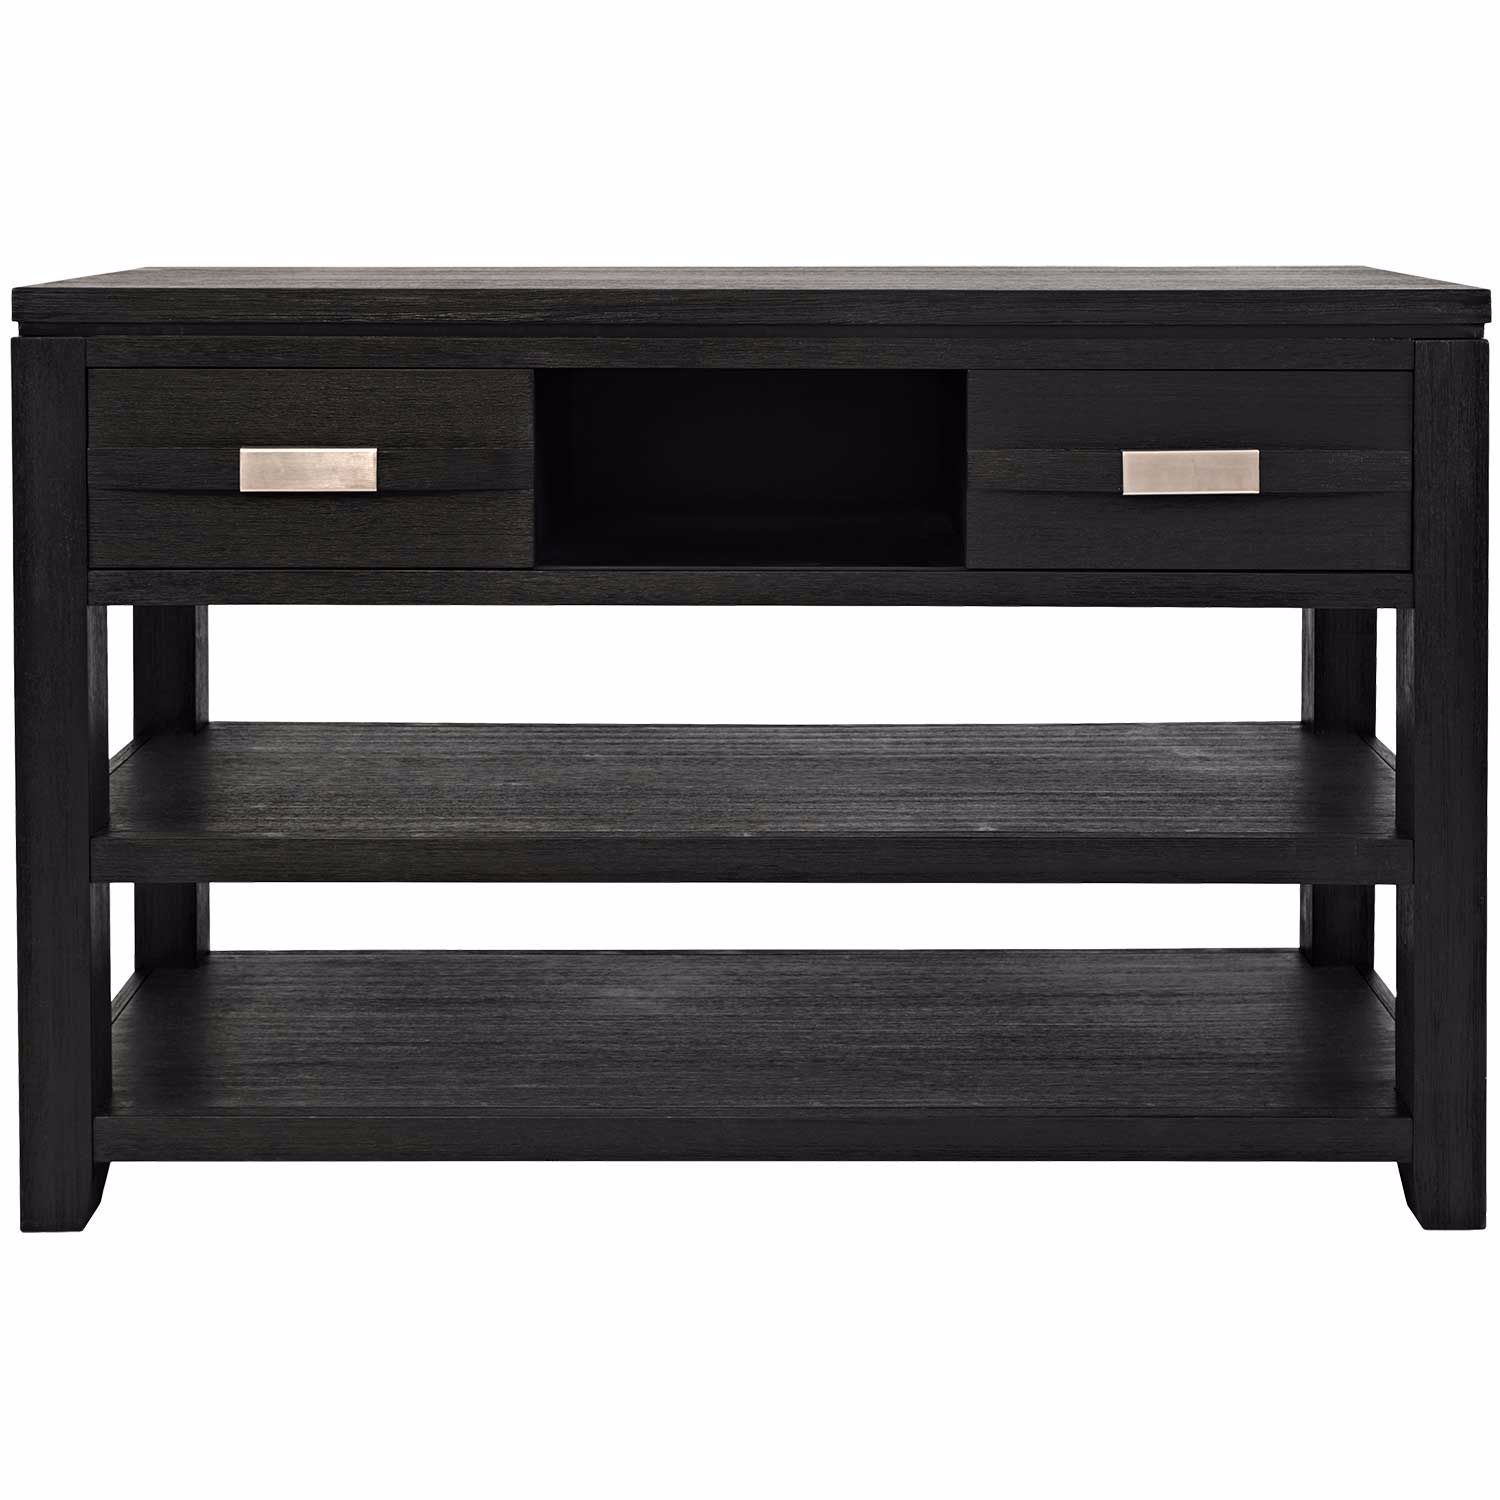 Picture of Orion Sofa Table